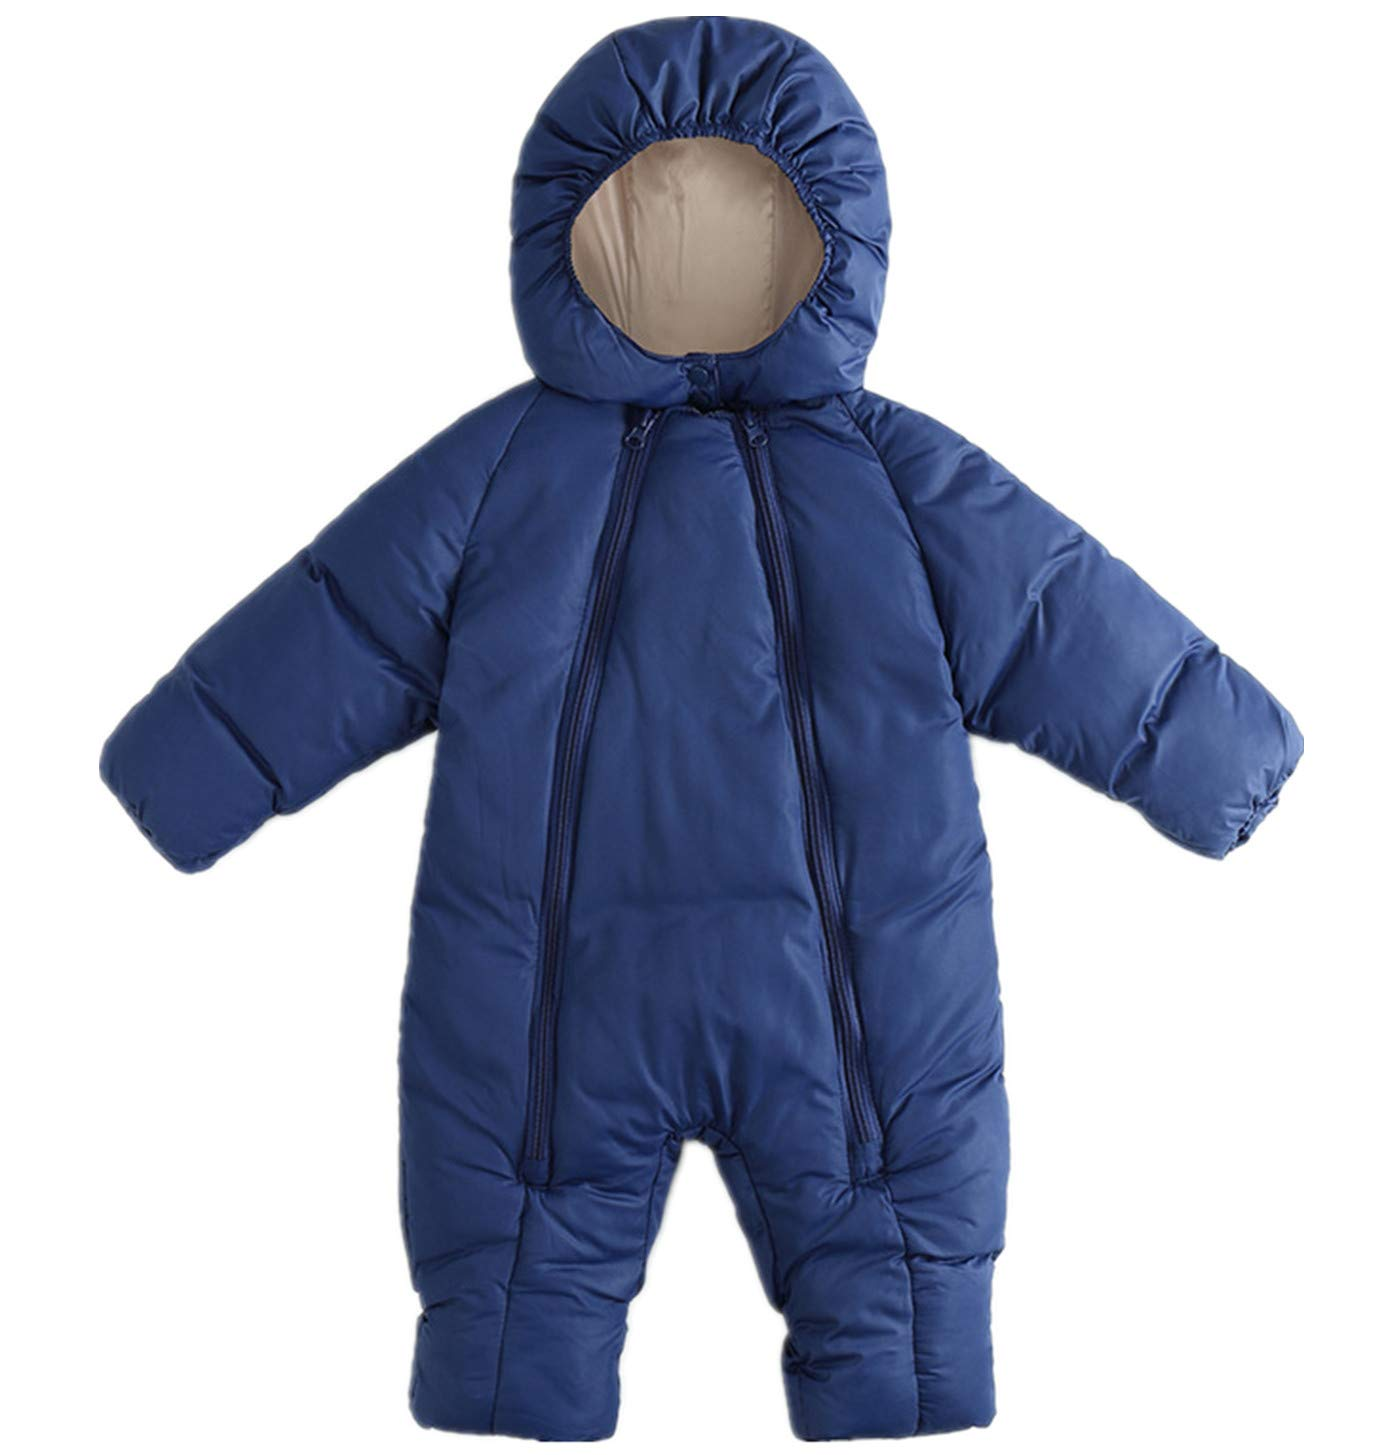 Ohrwurm Baby Winter Puffer One Piece Snowsuit with Hood Zipped Toddler Padded Sleepsuit (0-6 Months, Navy) by Ohrwurm